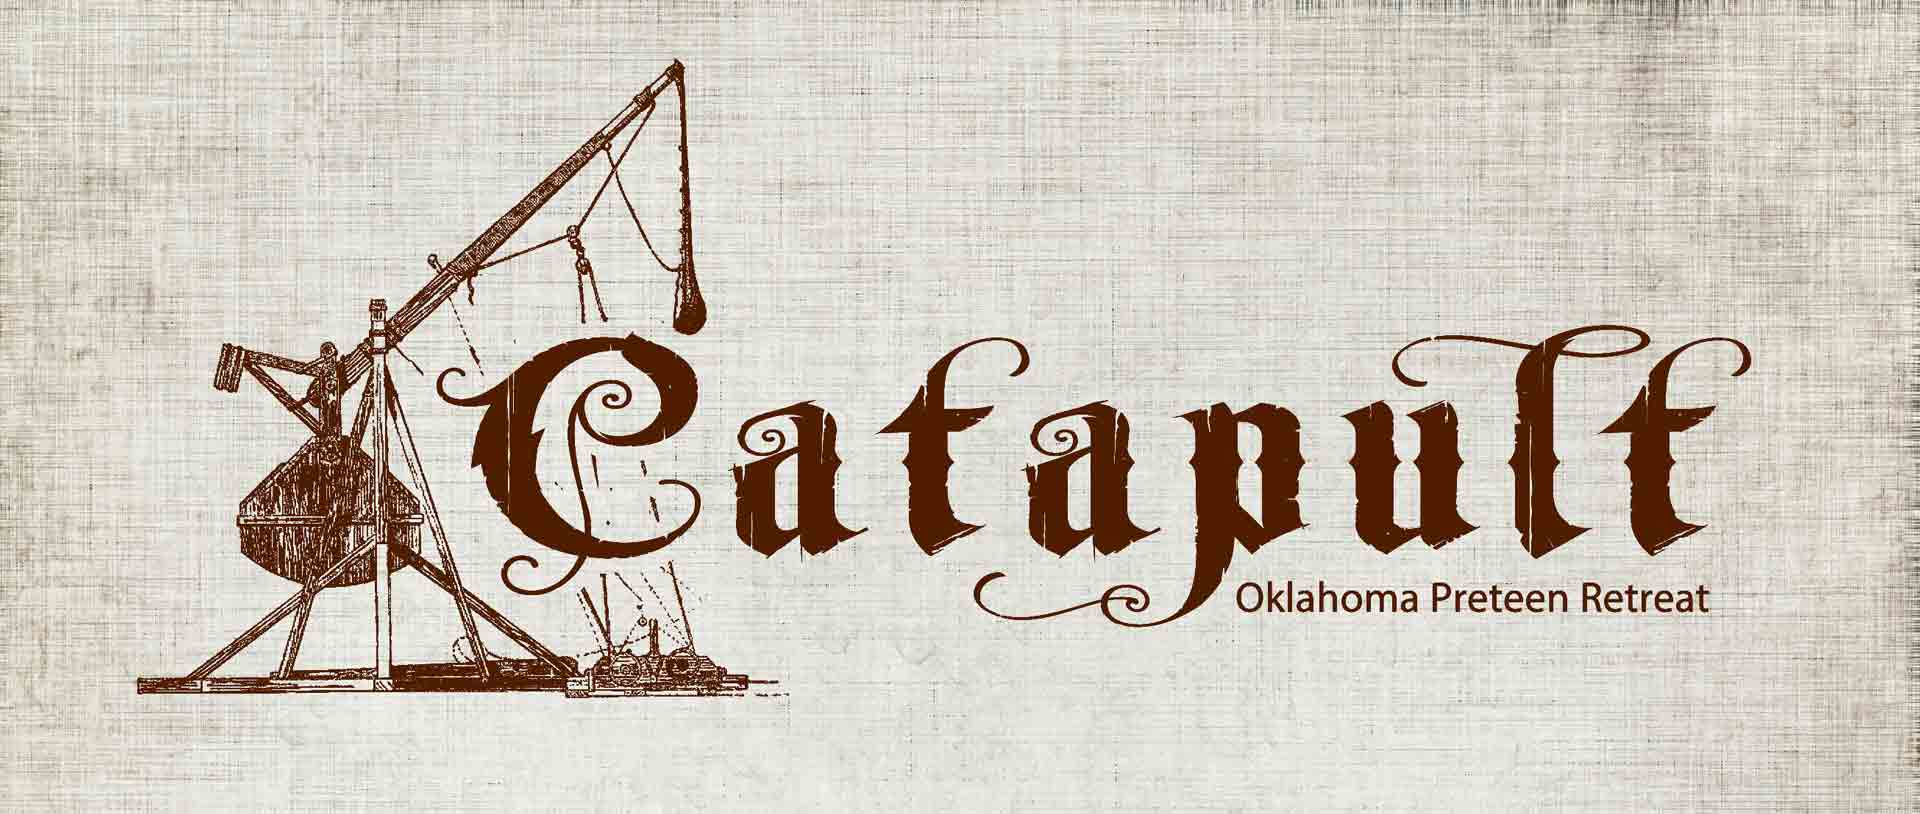 Catapult Oklahoma Pretten Retreat